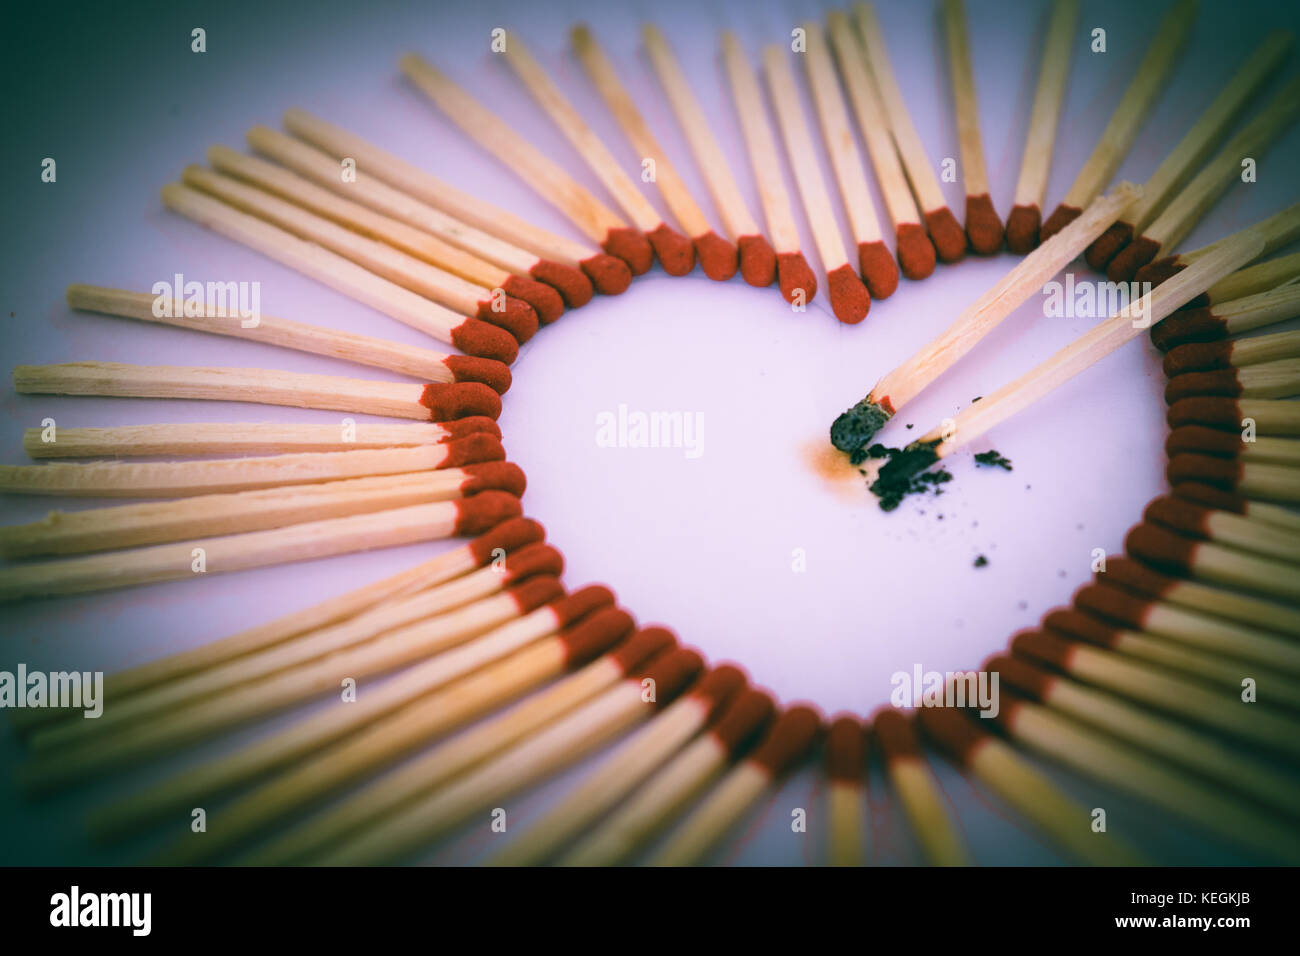 Heart On Fire - Stock Image